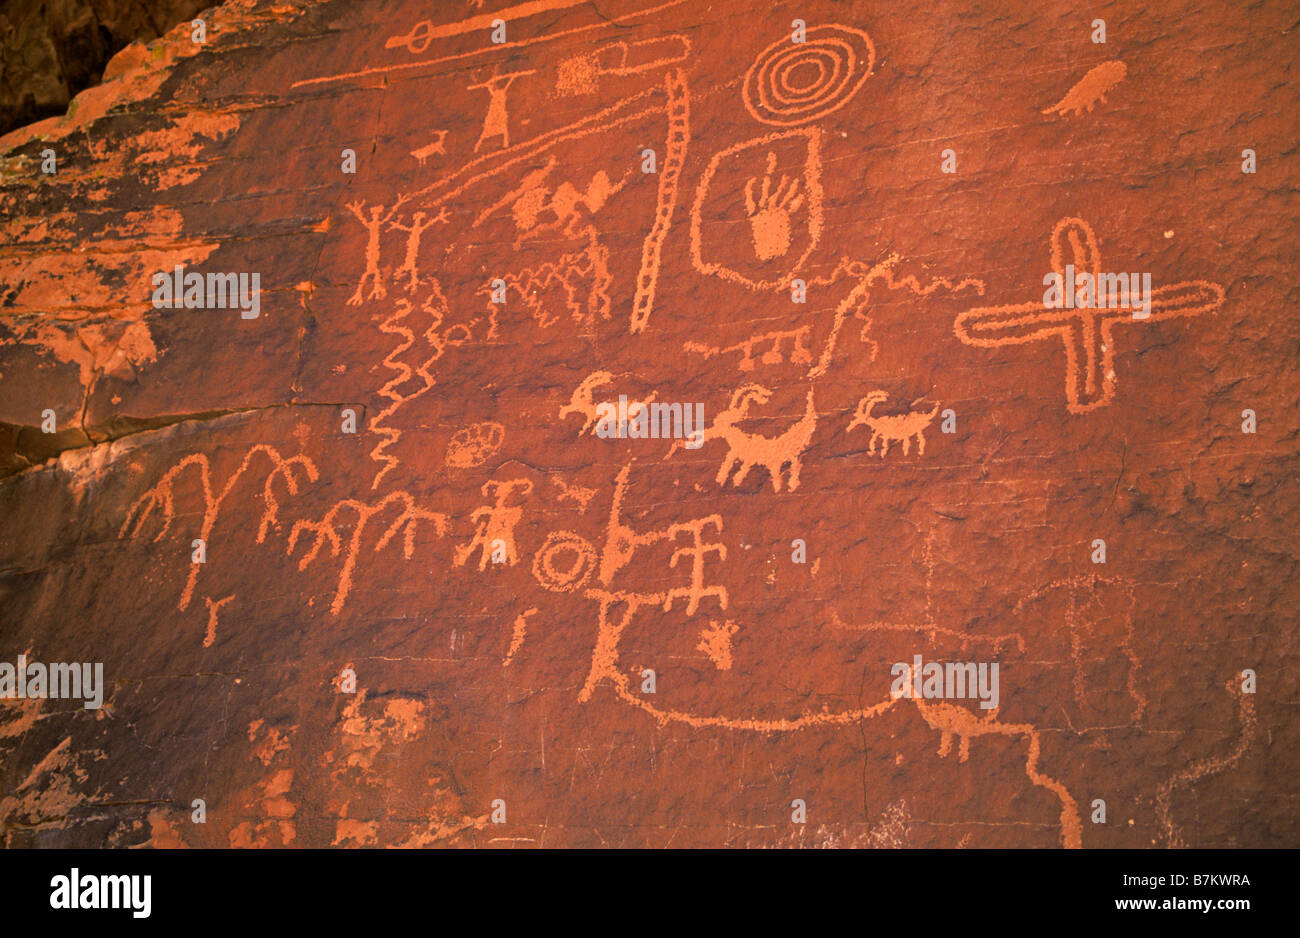 Ancient petroglyphs of people and bighorn sheep made by Anasazi orBasketmaker Indians on sandstone cliffs - Stock Image